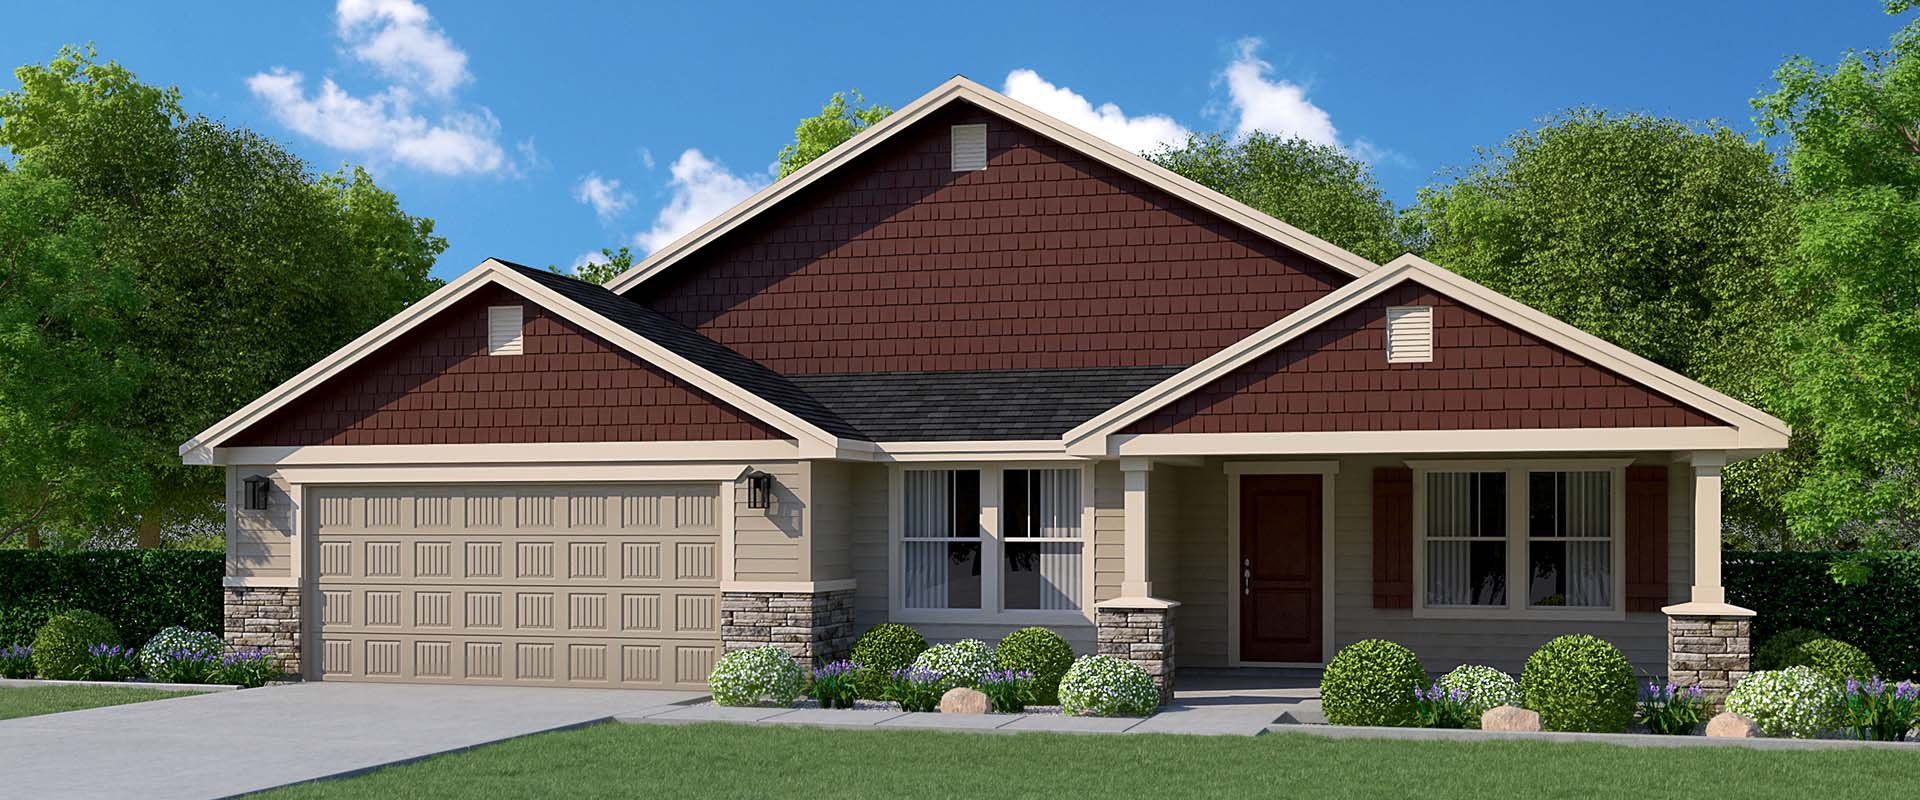 new-homes-boise-idaho-hubble-homes_0034_Emerald Craftsman pack 58.jpg